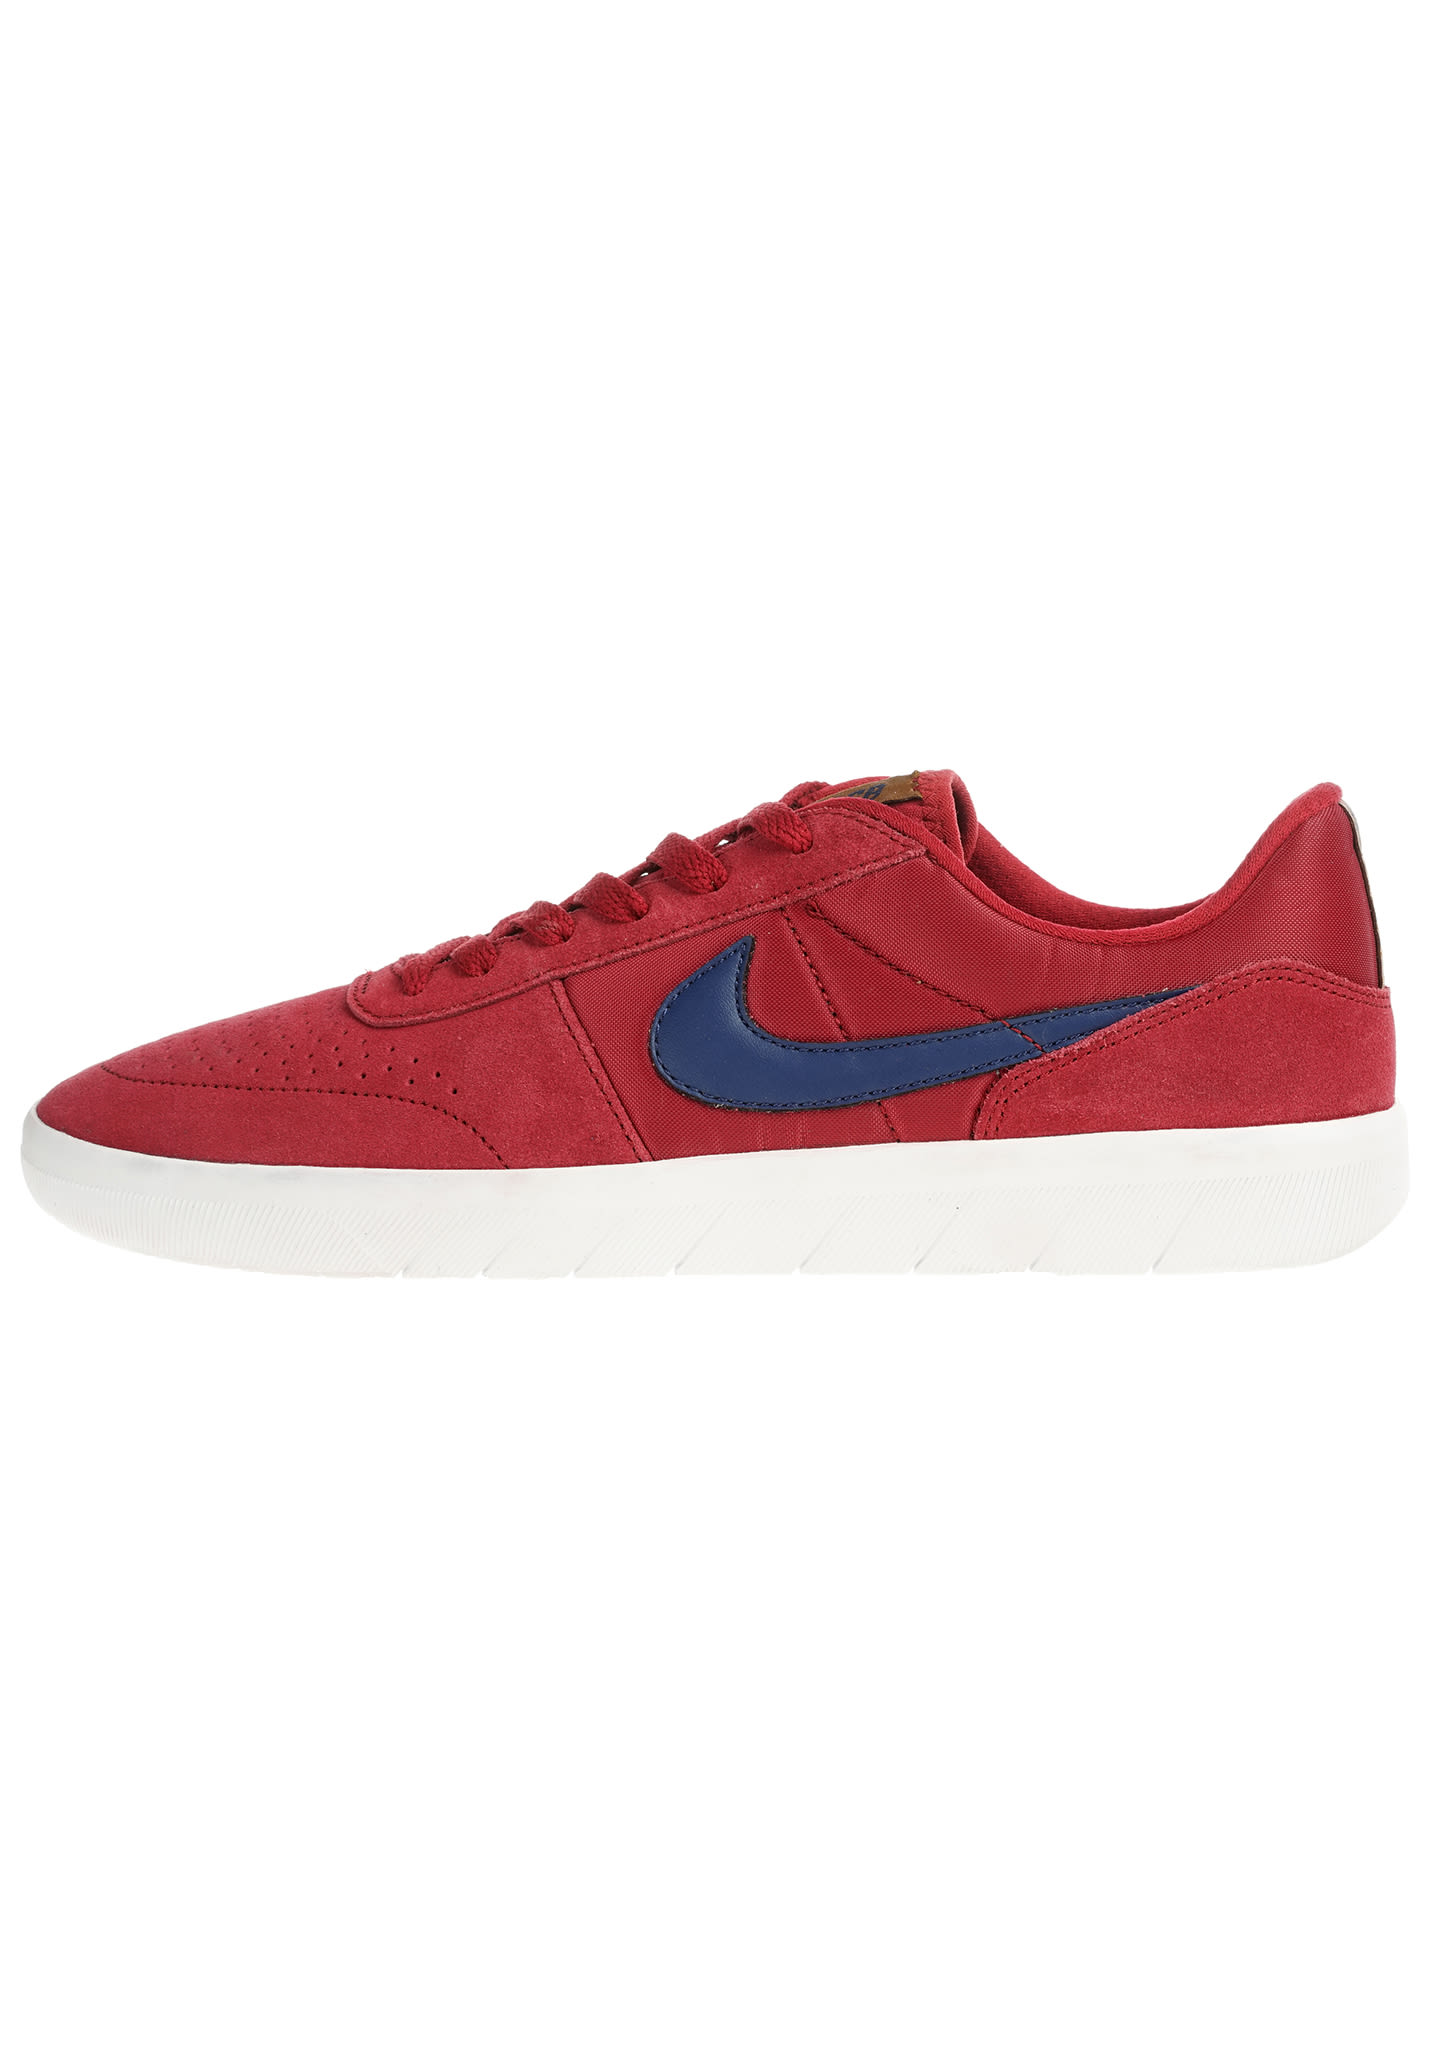 hot sales 479e1 4c3af NIKE SB Team Classic - Sneakers for Men - Red